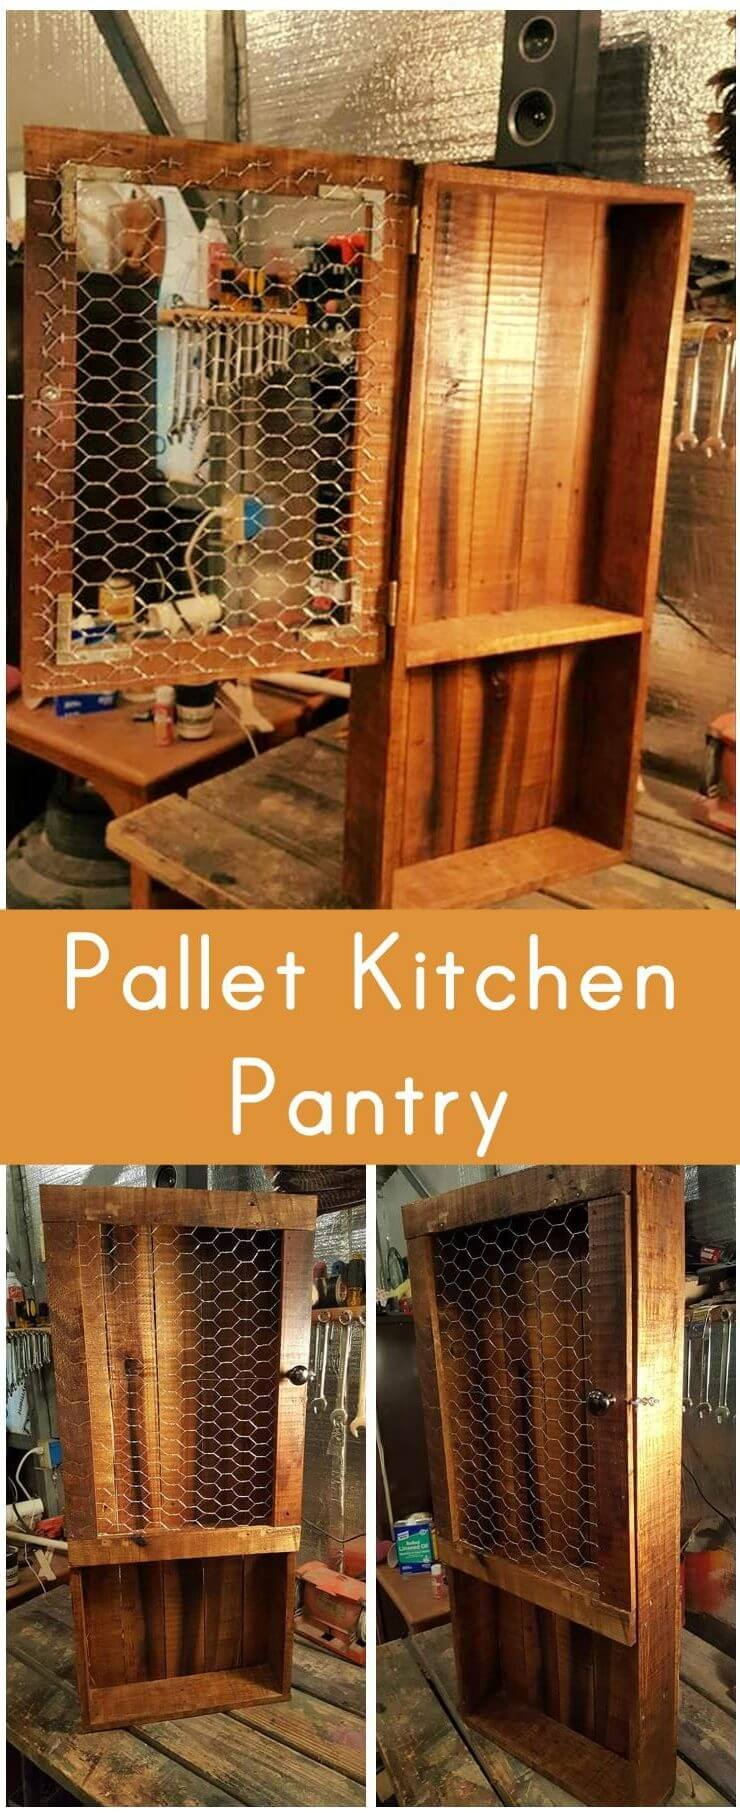 Pallet Kitchen Pantry